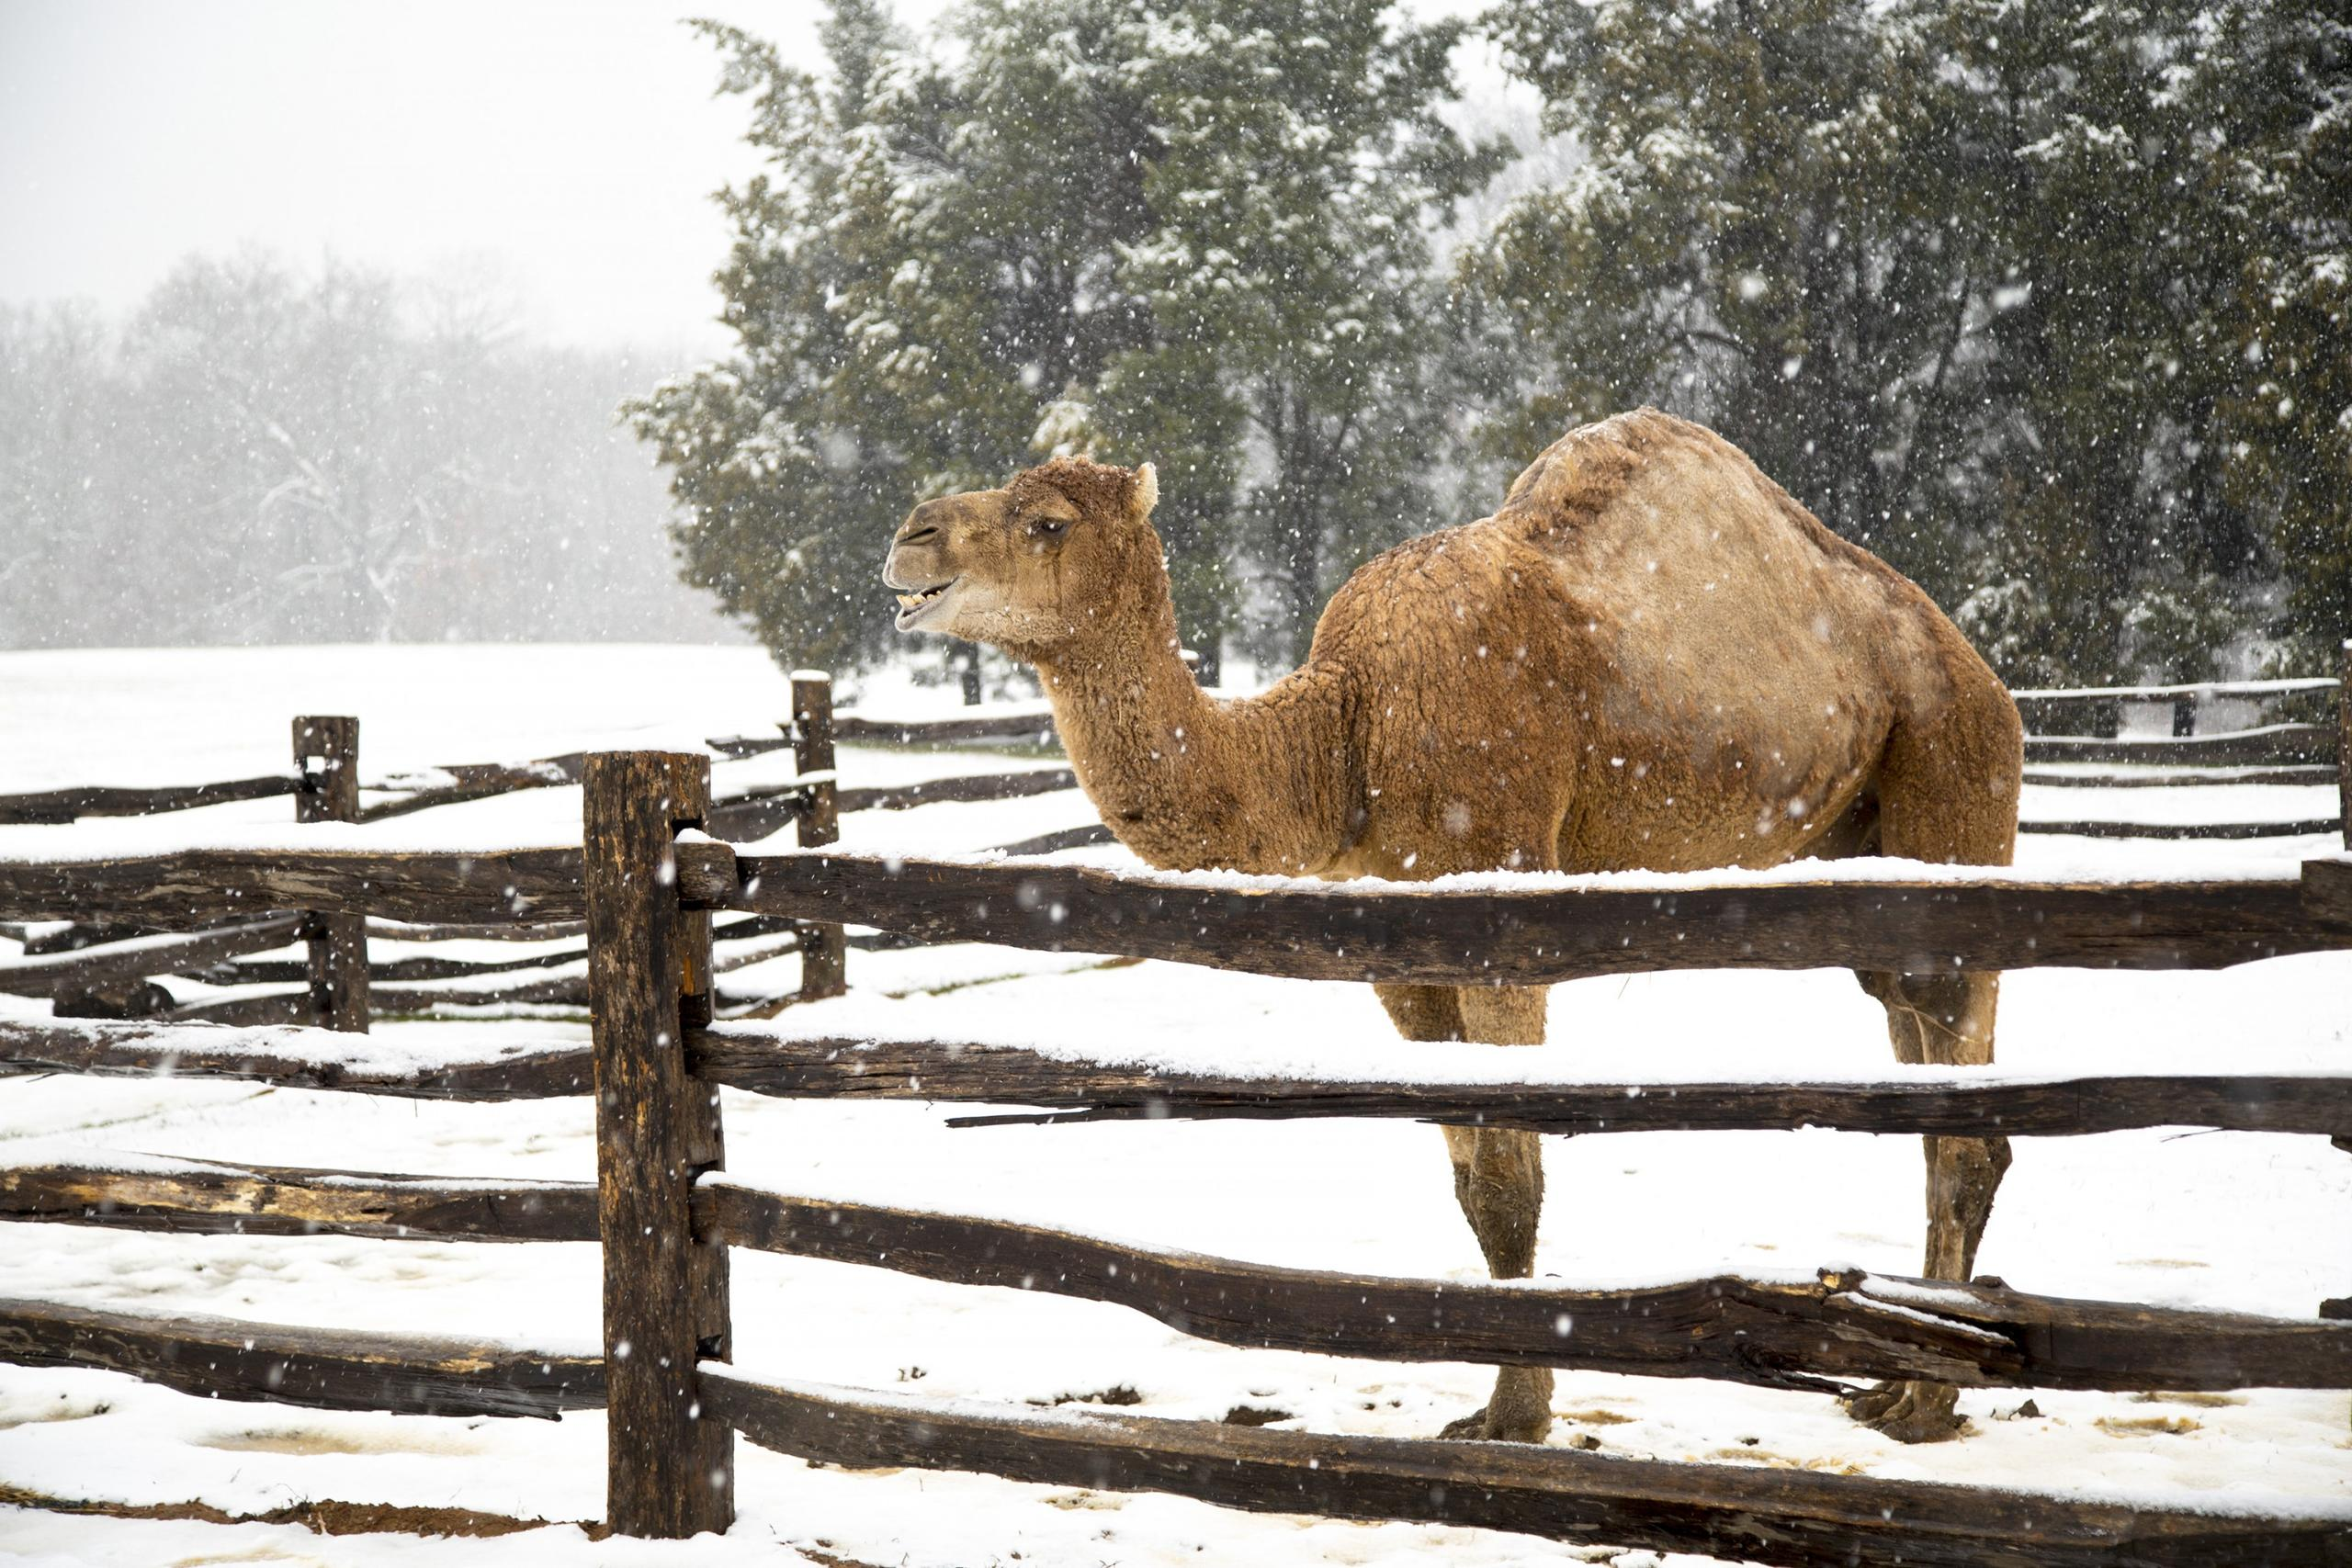 Aladdin the camel, part of Chirstmas at Mount Vernon. MVLA.